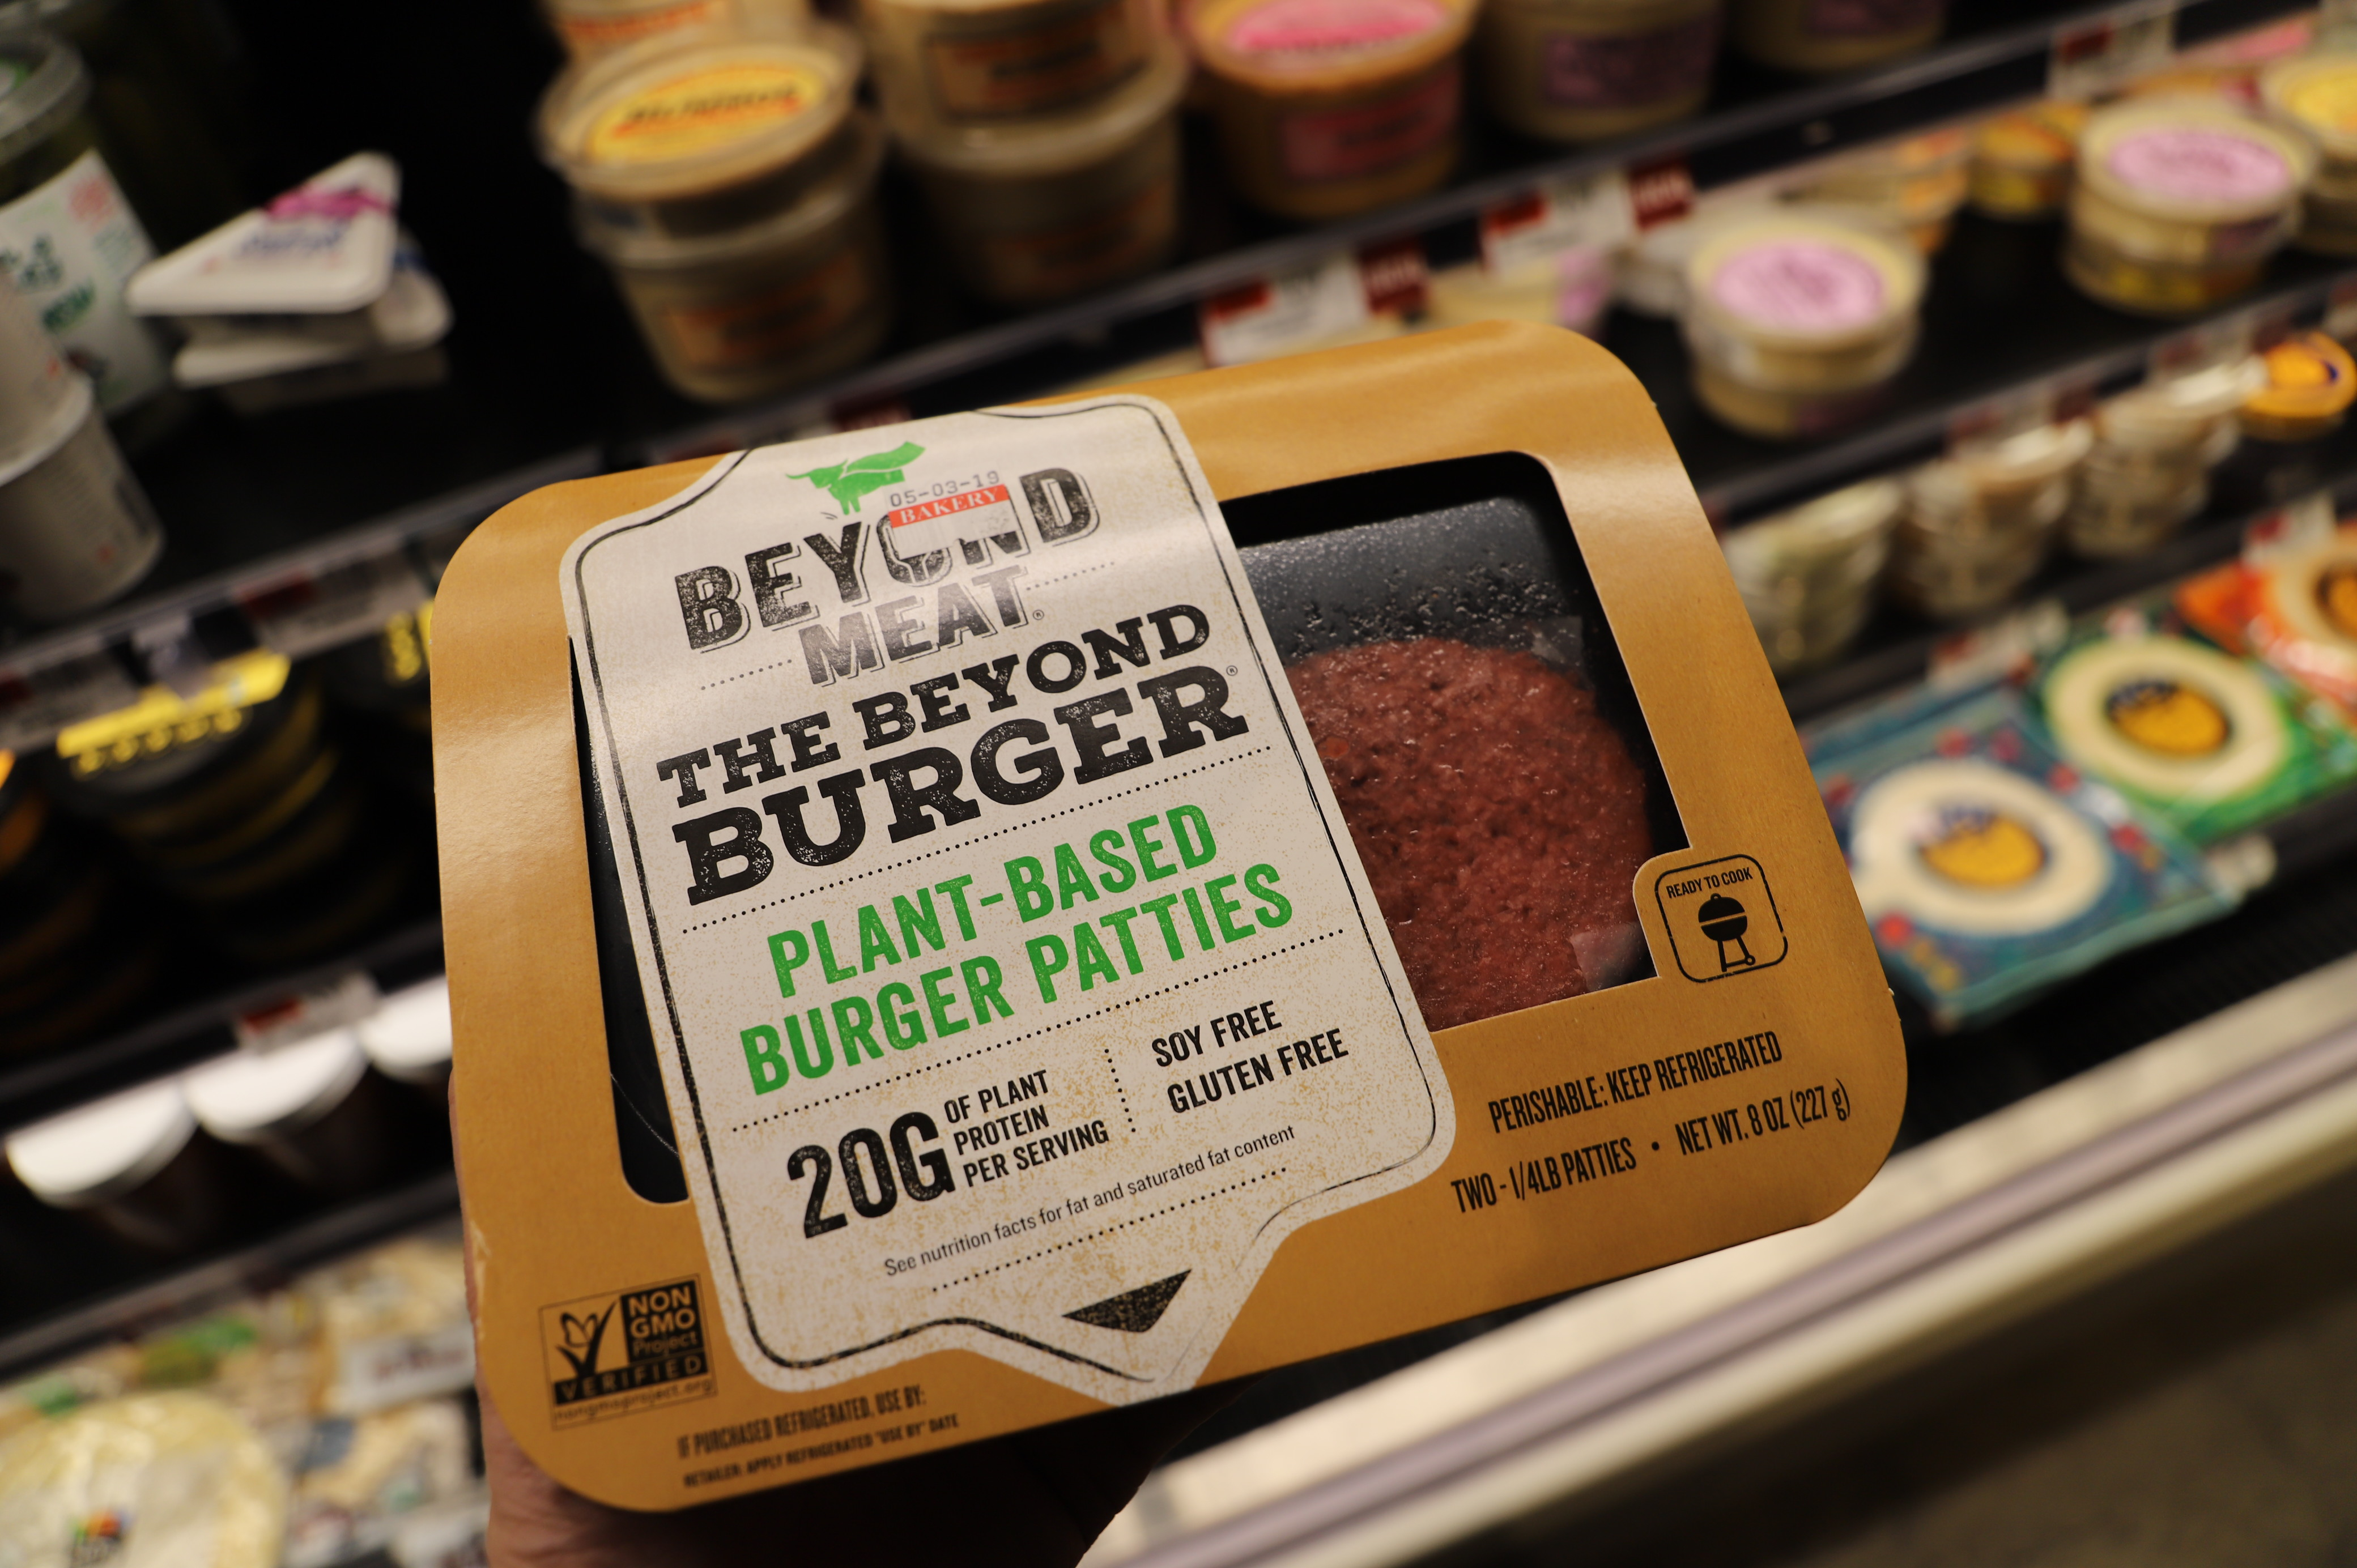 A Beyond Burger package held up in front of a grocery case.